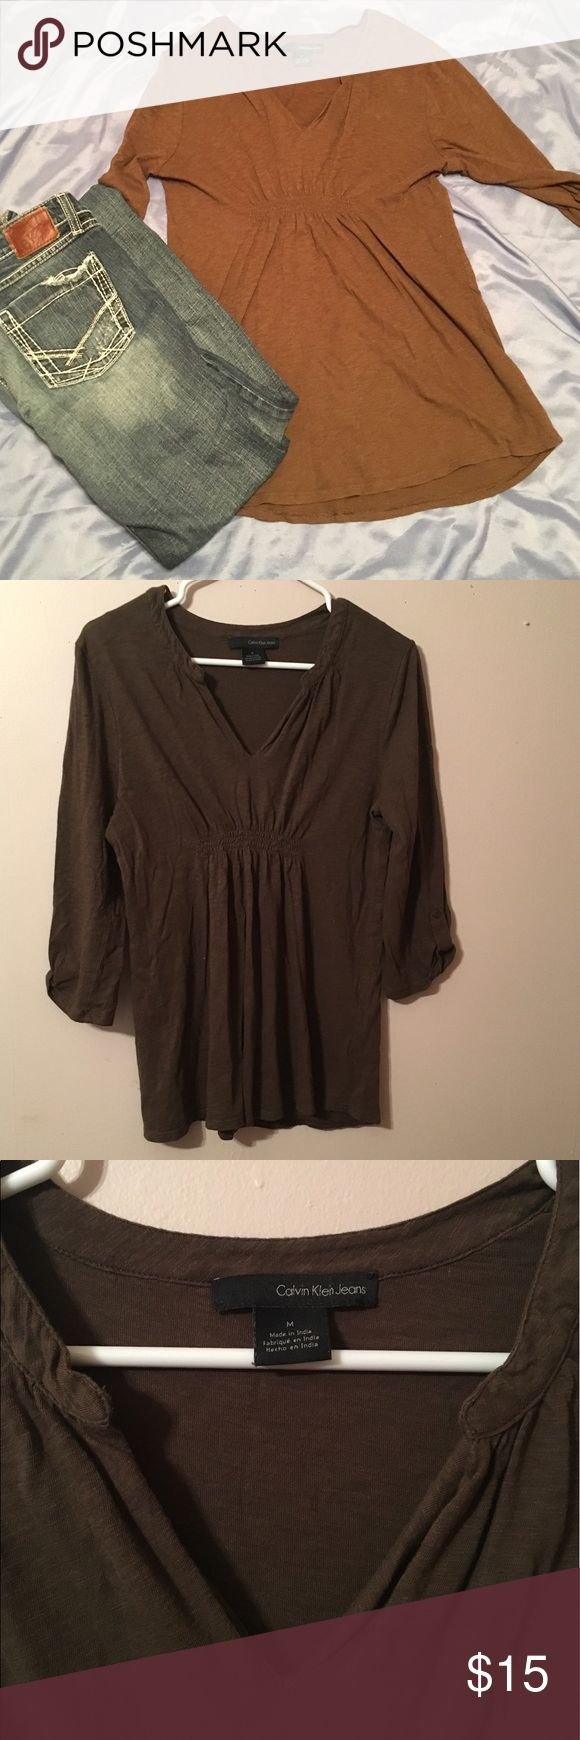 M Calvin Klein brown long sleeve top Medium/ brown/ long sleeve/ v-neck/ bunch accent on front/ button on sleeve Calvin Klein Jeans Tops Blouses